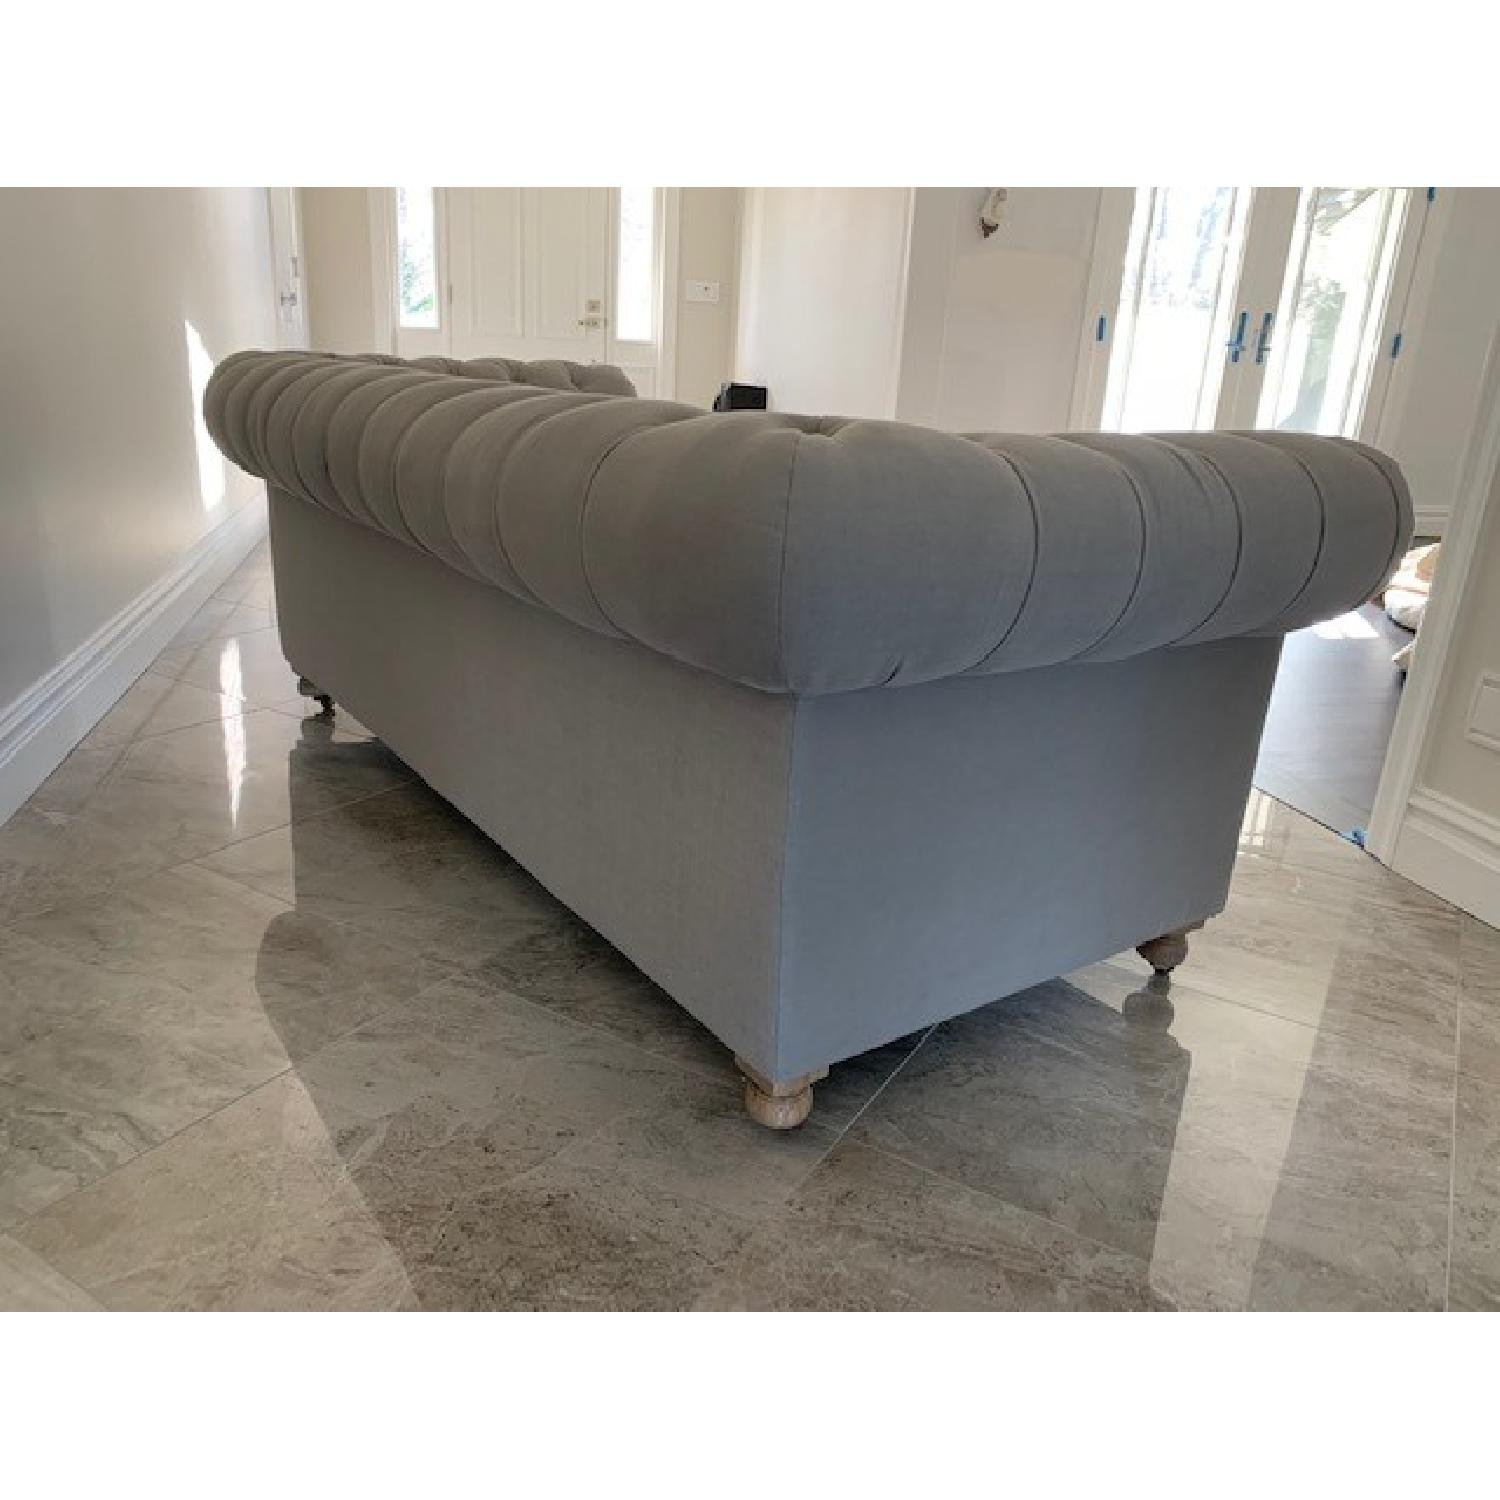 Restoration Hardware Cambridge Belgian Linen Fog Sofa-2